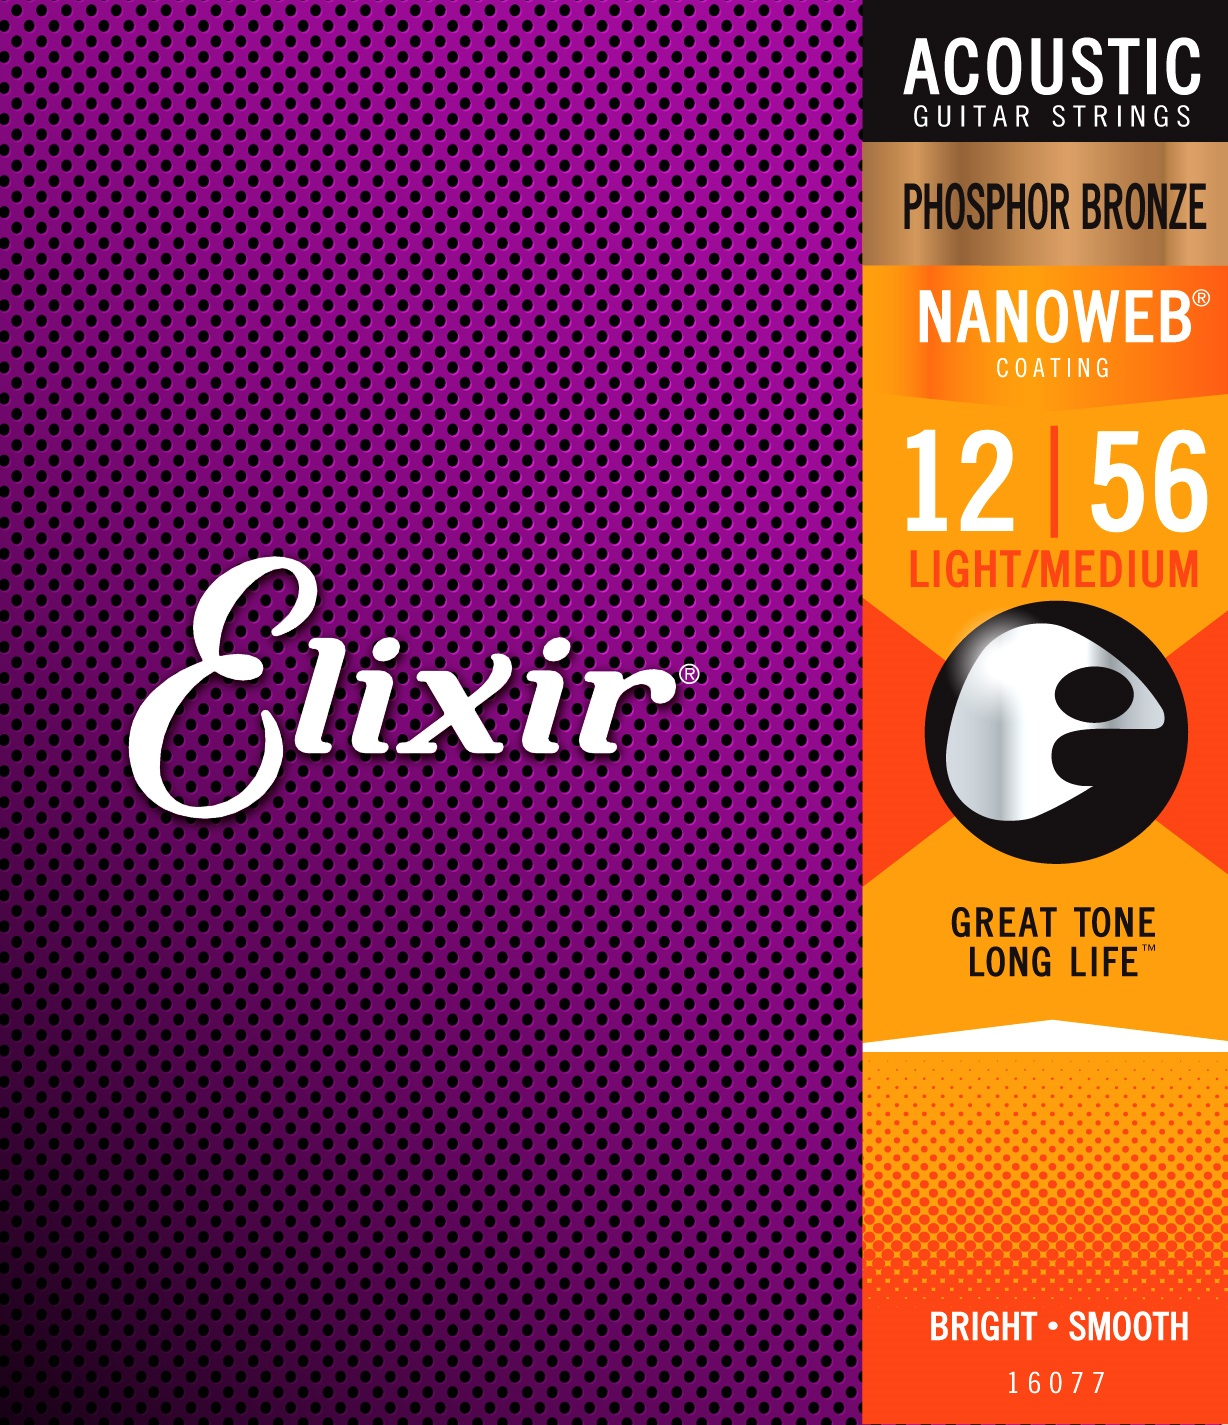 Elixir Nanoweb Phosphor Bronze Light-Medium